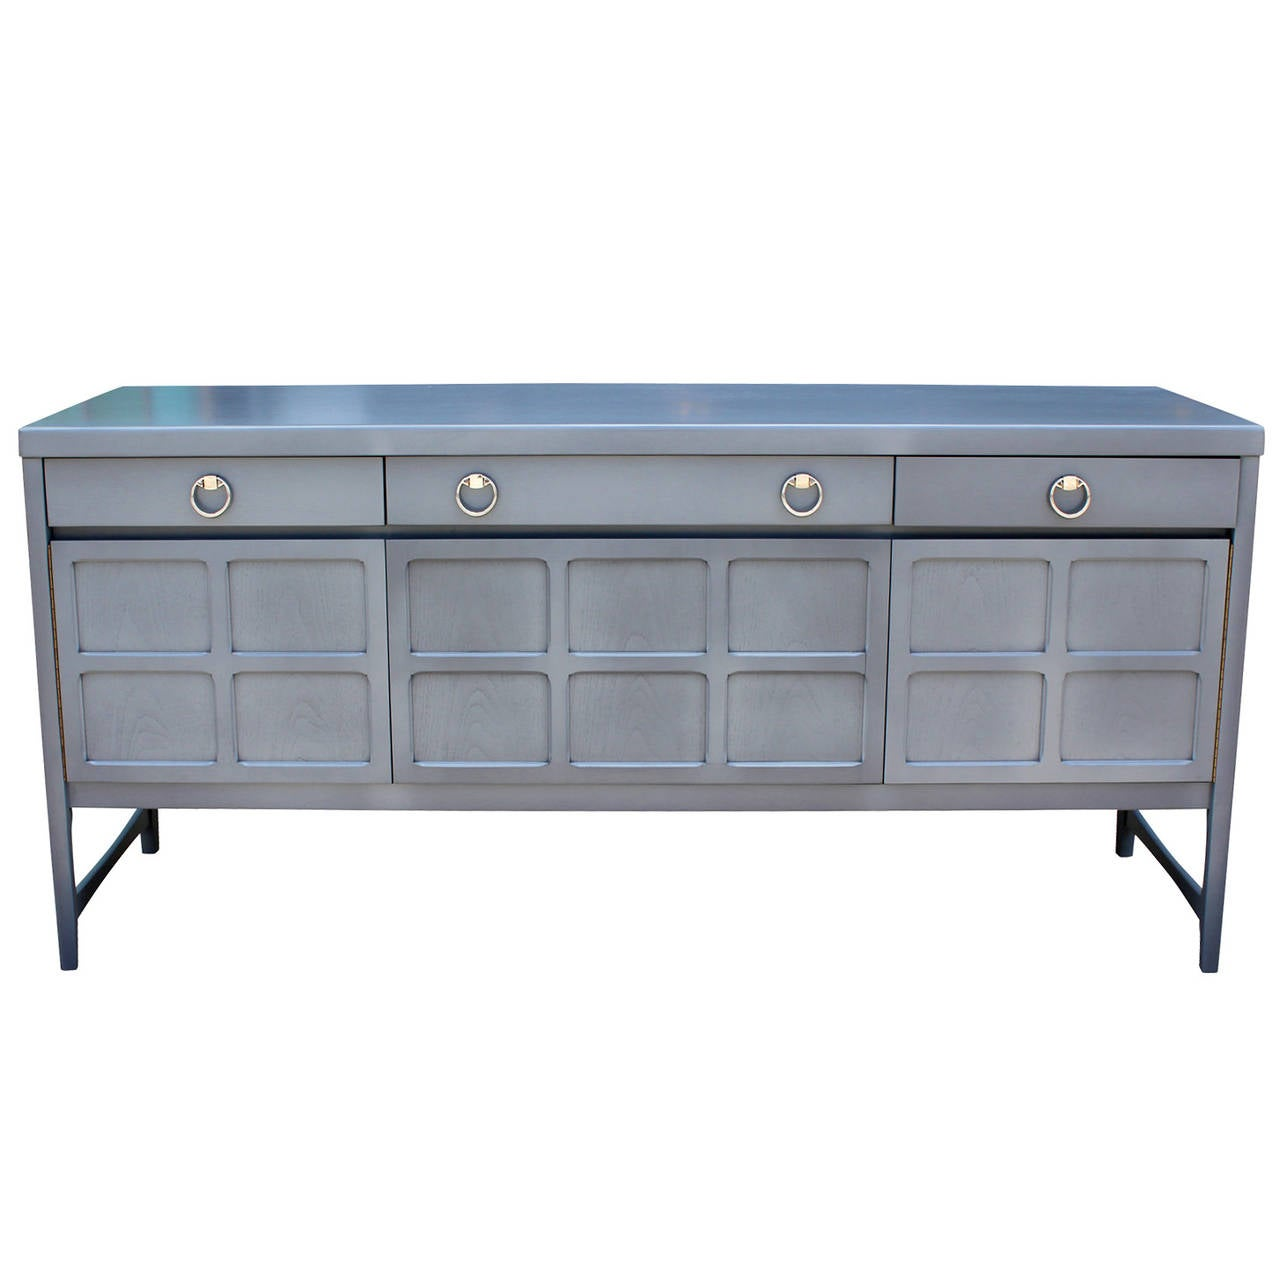 Light French Blue Grey Sideboard With Chrome Handles At